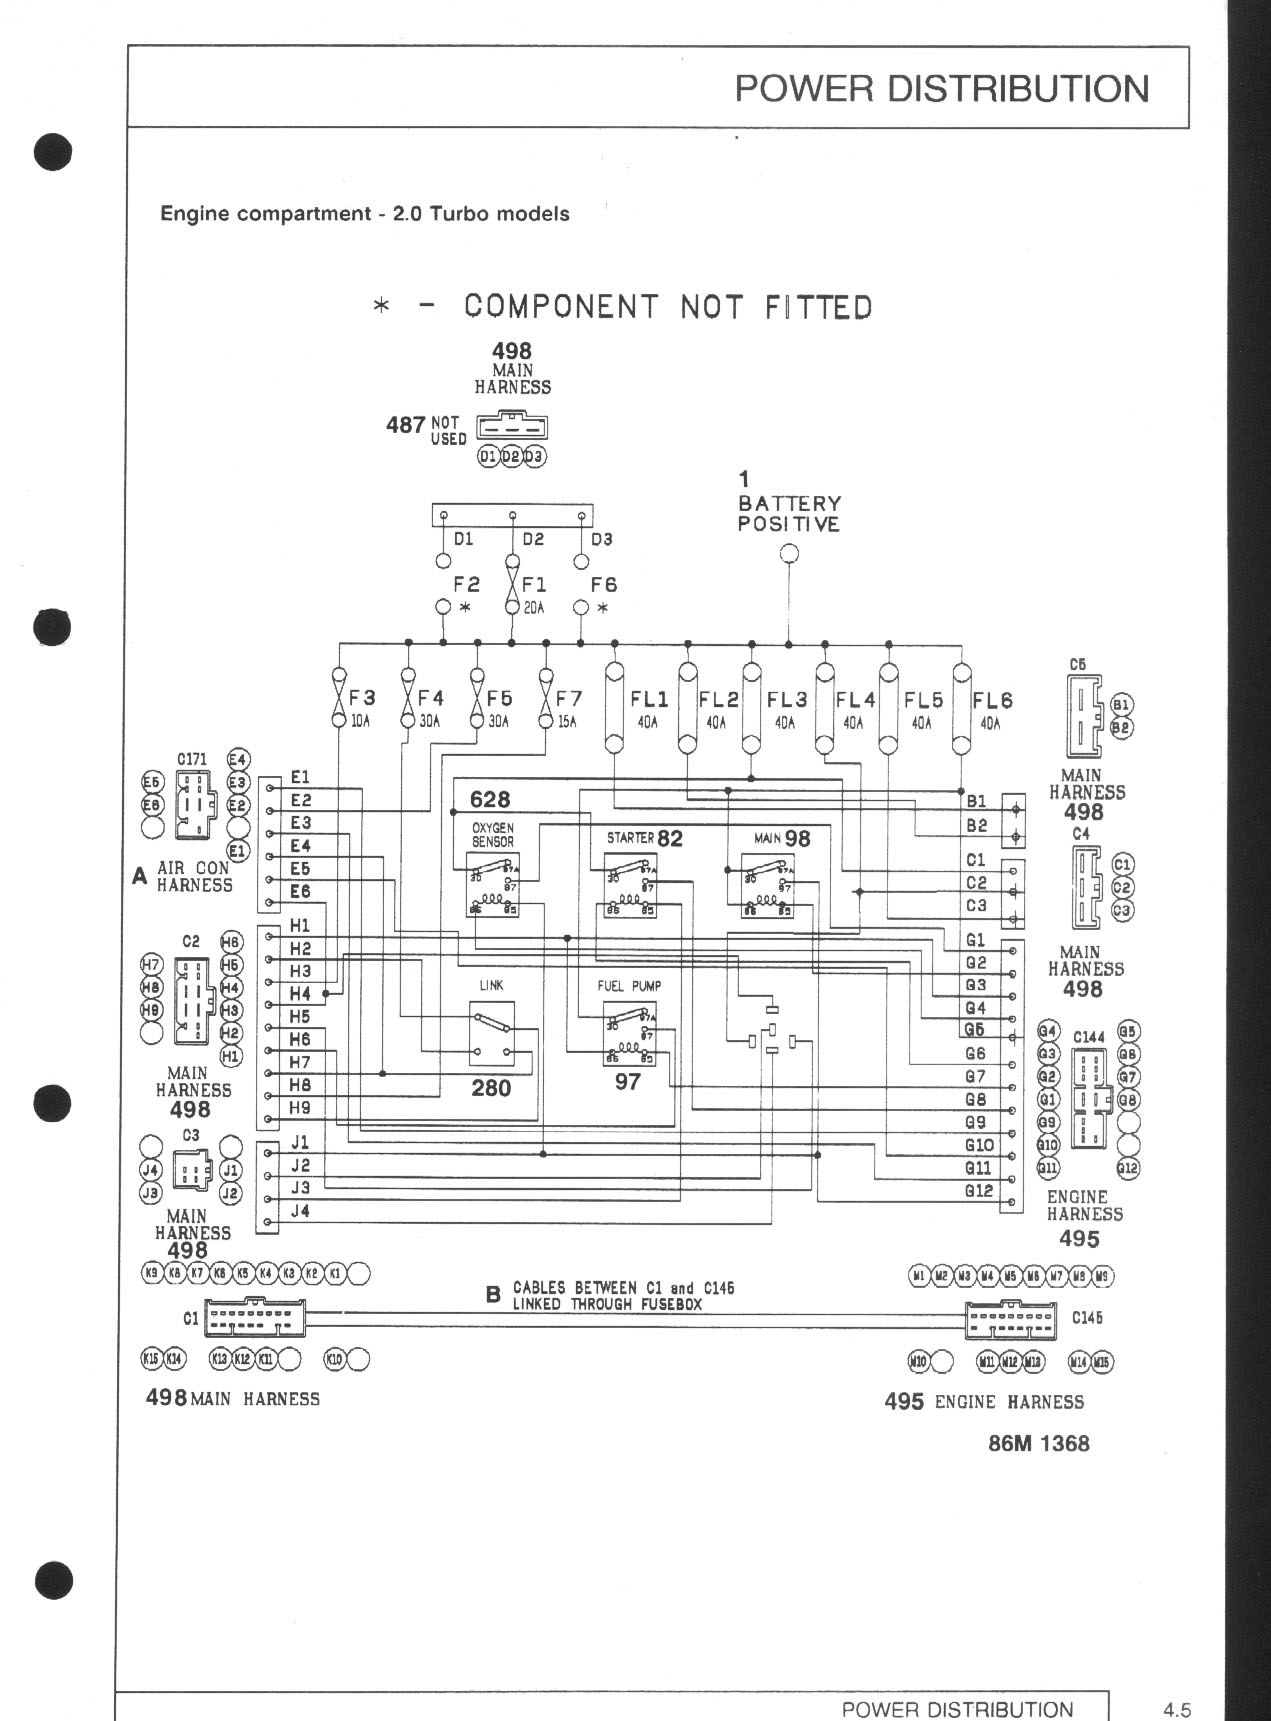 Rover 400 Fuse Box Manual E Books Ford Focus Uk Wiring Diagram For 100 Diagramrover Schematics Diagramwiring